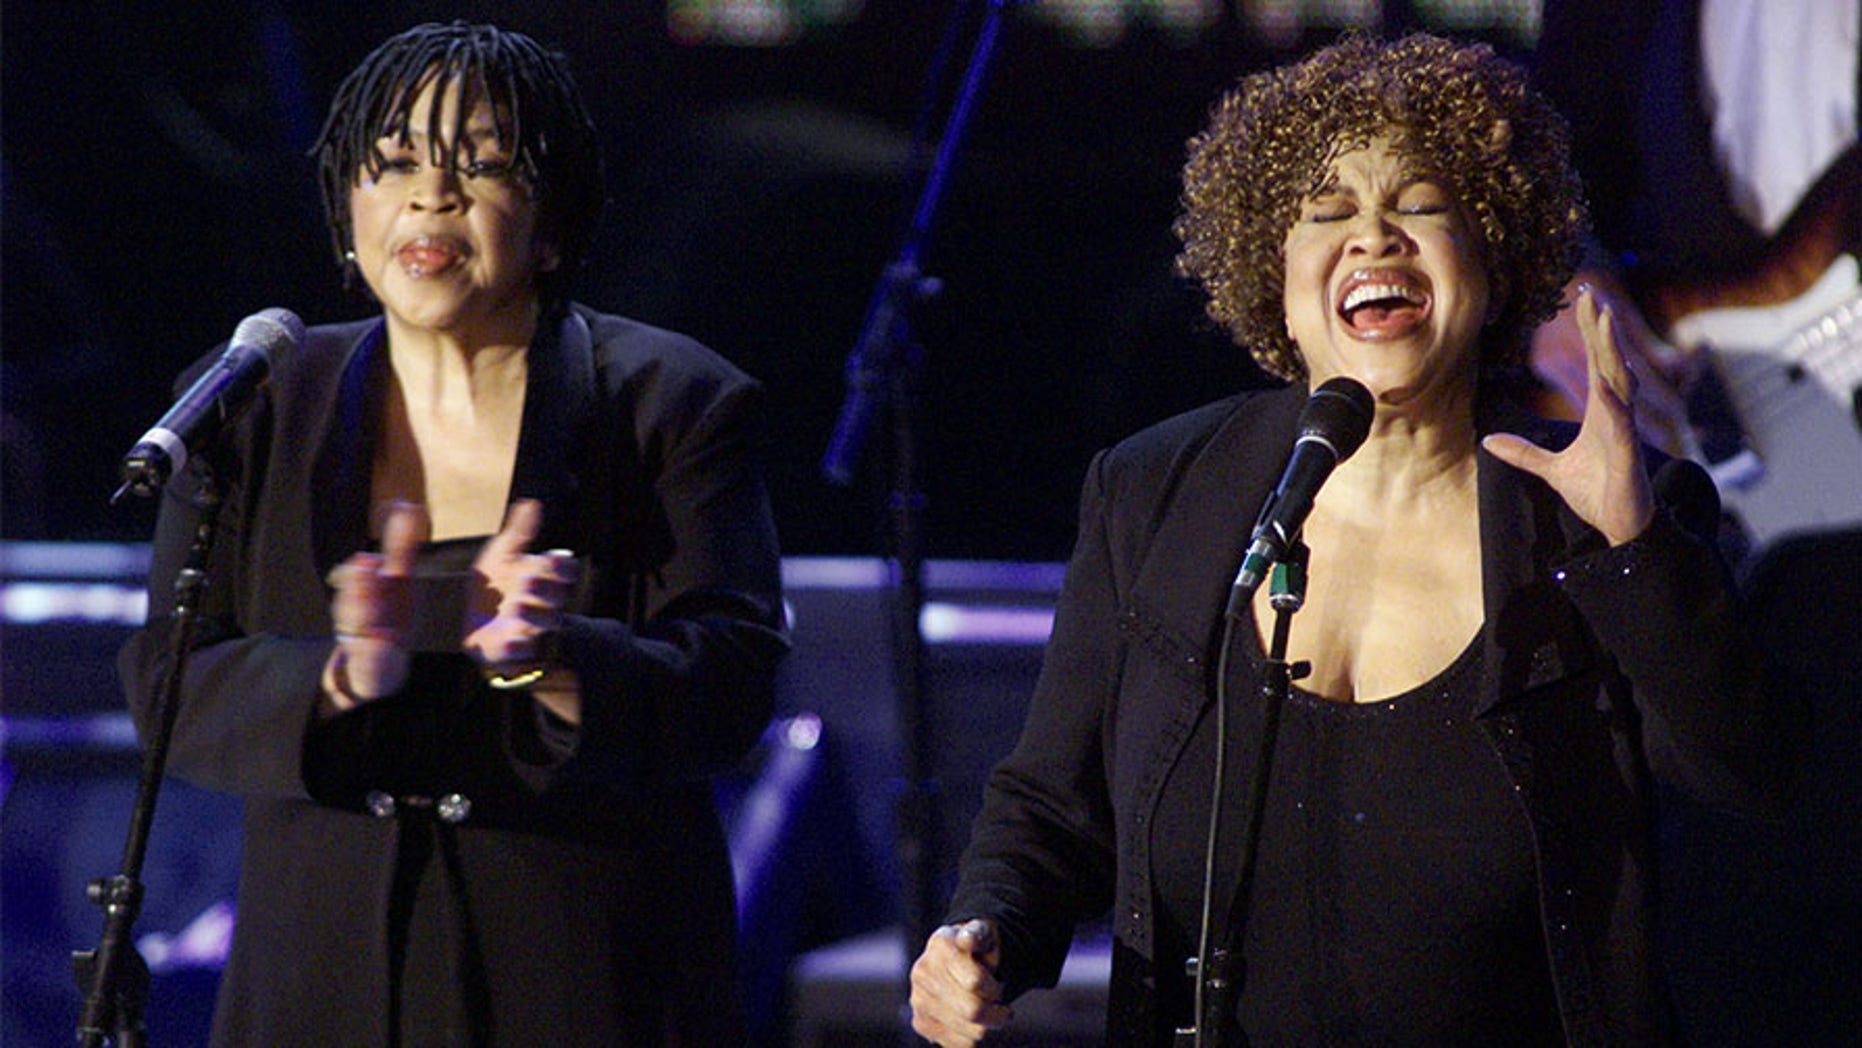 Mavis Staples (R) and Yvonne Staples (L) perform after they and the rest of the Staples Singers accepted their induction into the Rock & Roll Hall of Fame at the 14th Annual Rock and Roll Hall of Fame Induction Ceremony at New York's Waldorf Astoria Hotel, March 15.